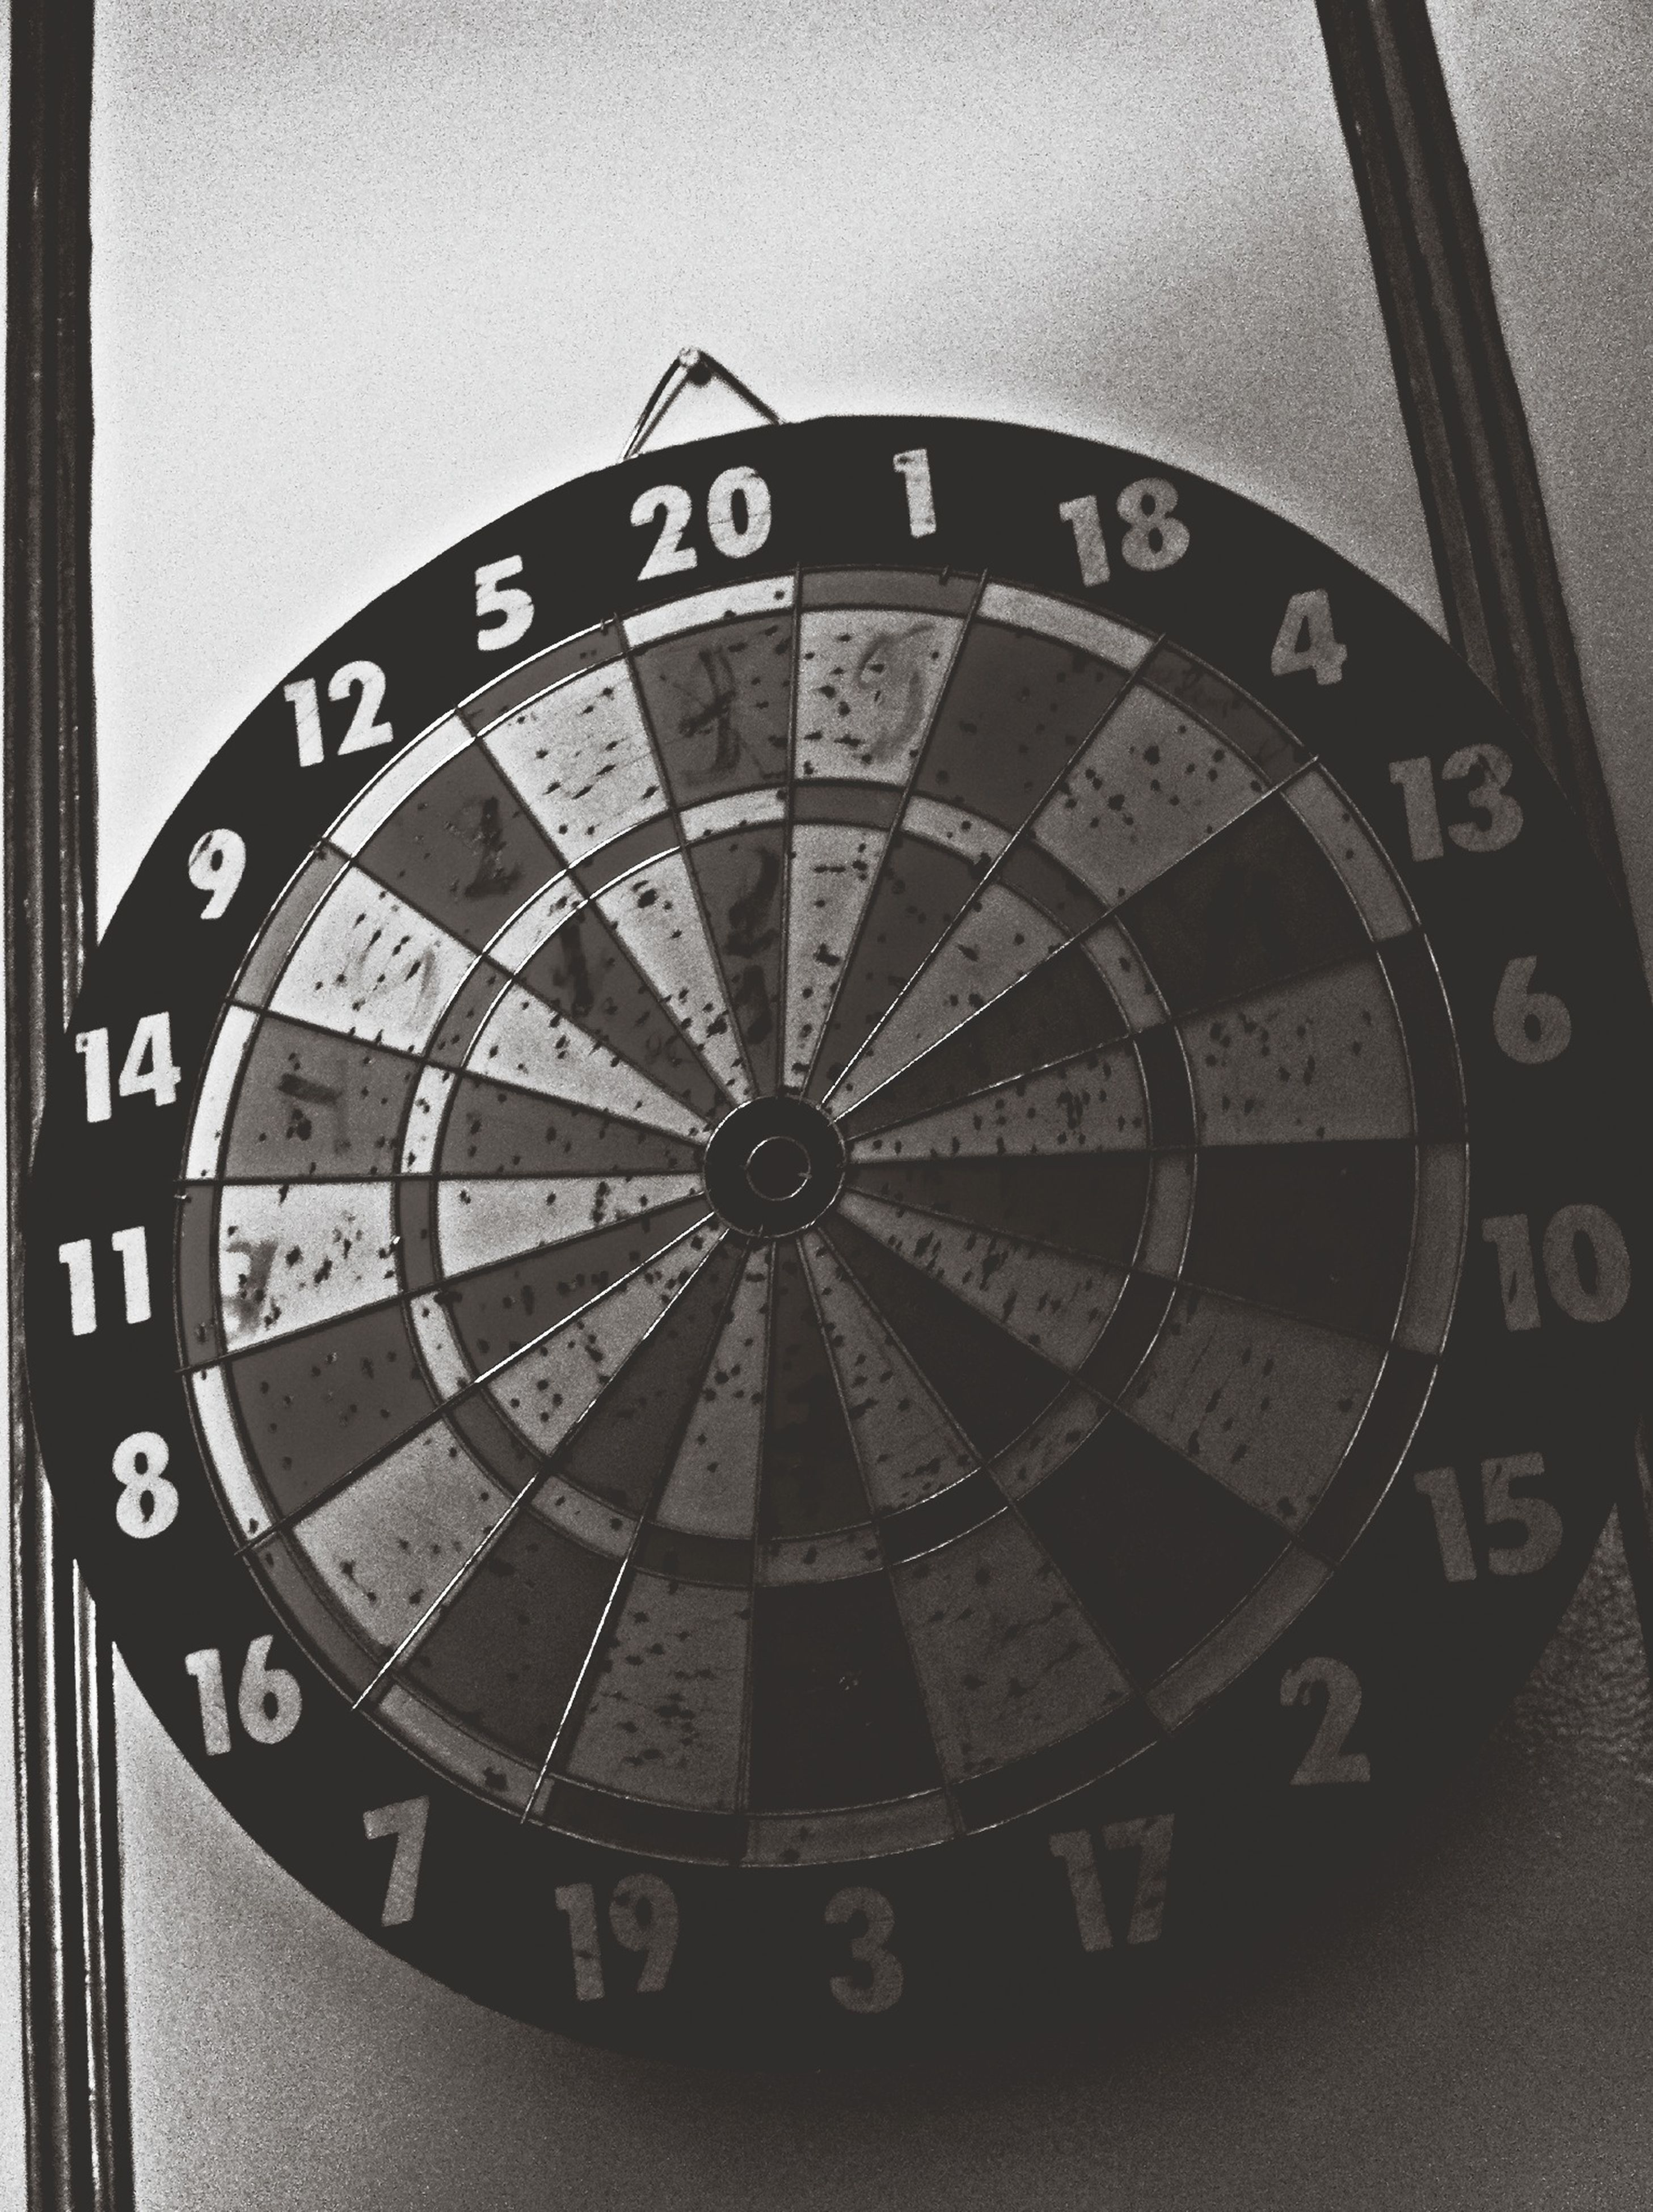 time, clock, number, communication, circle, text, clock face, indoors, low angle view, close-up, roman numeral, minute hand, accuracy, wall clock, geometric shape, western script, instrument of time, single object, no people, round